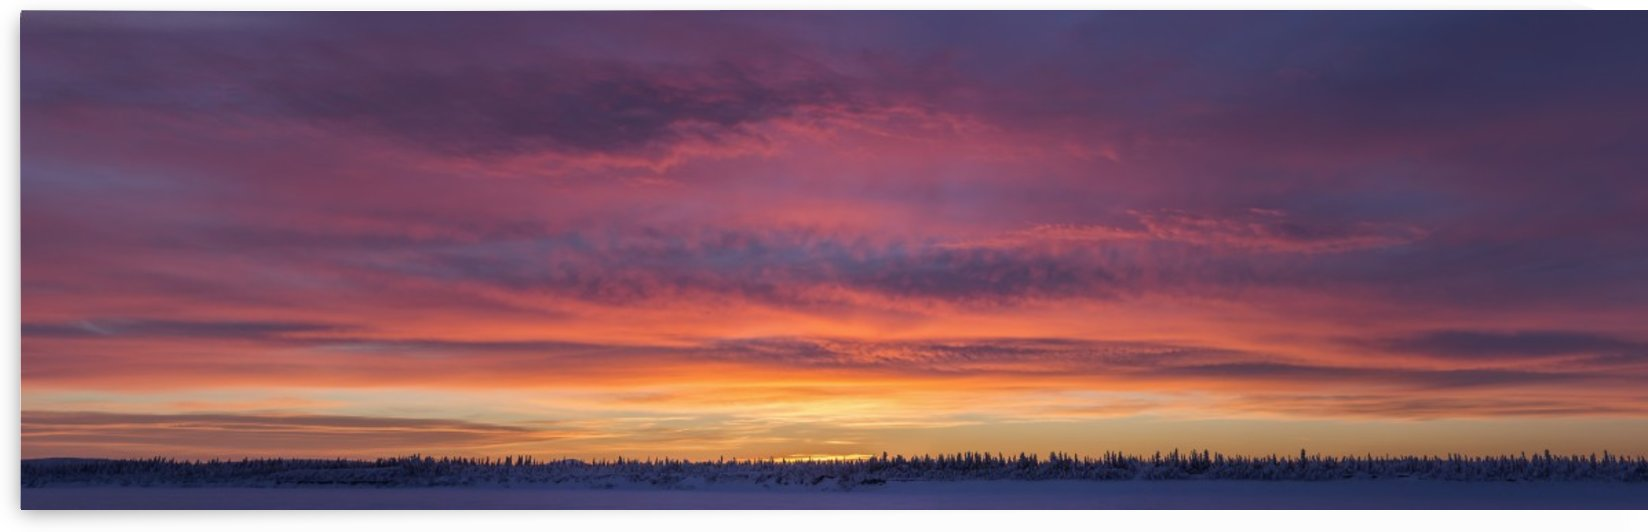 Sunrise clouds over the Porcupine River; Old Crow, Yukon, Canada by PacificStock